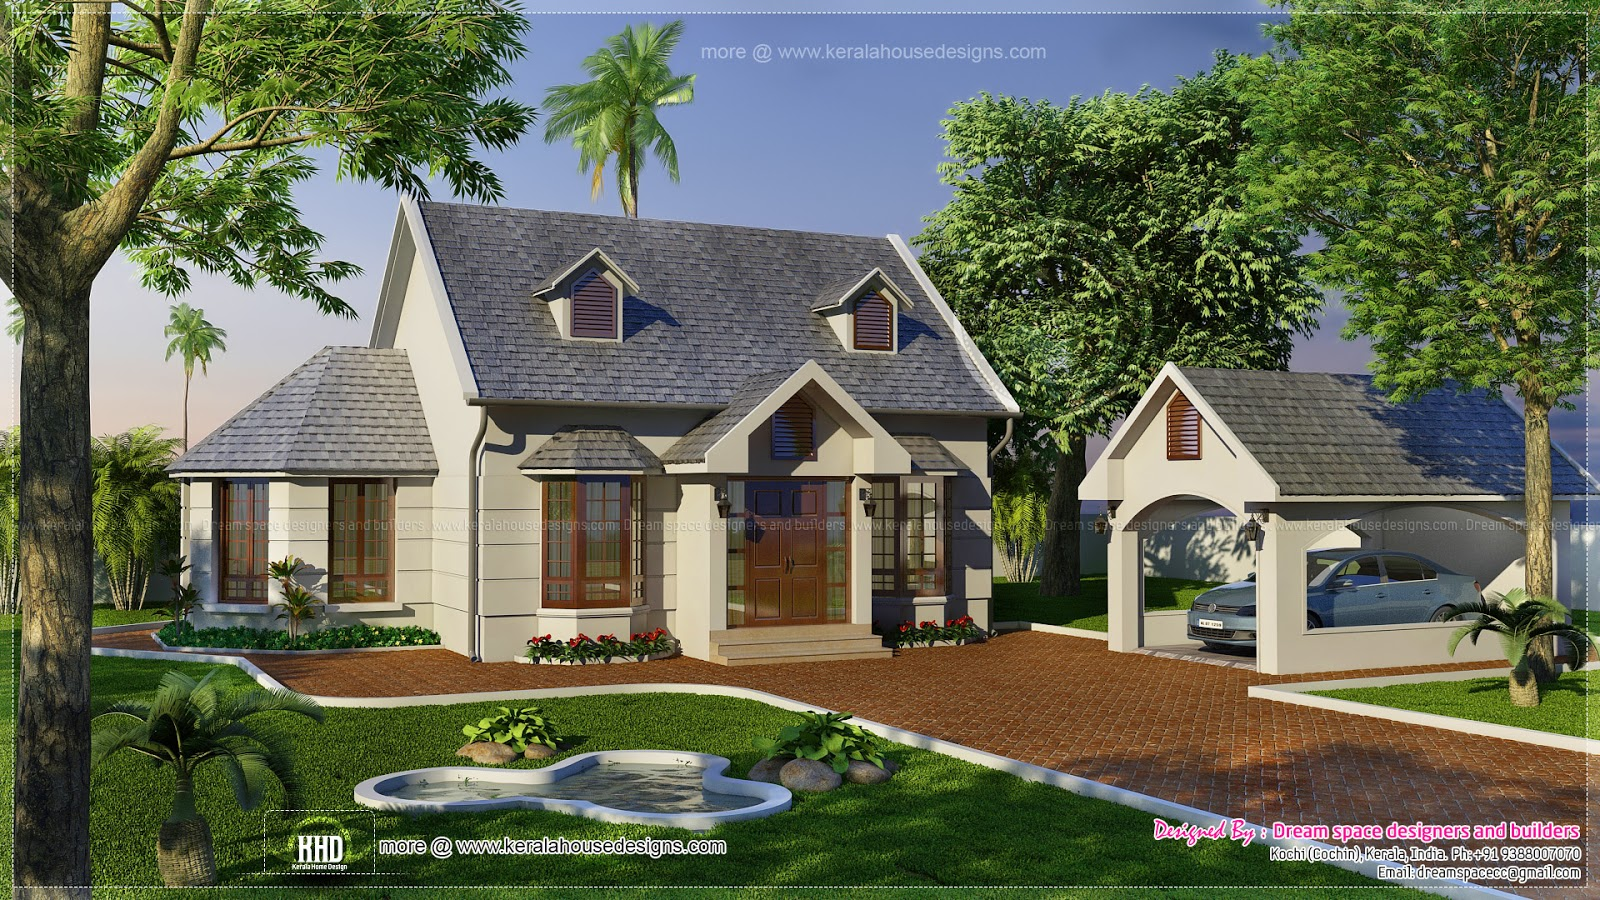 Vacation garden home design in 1200 home kerala for Backyard cottage plans